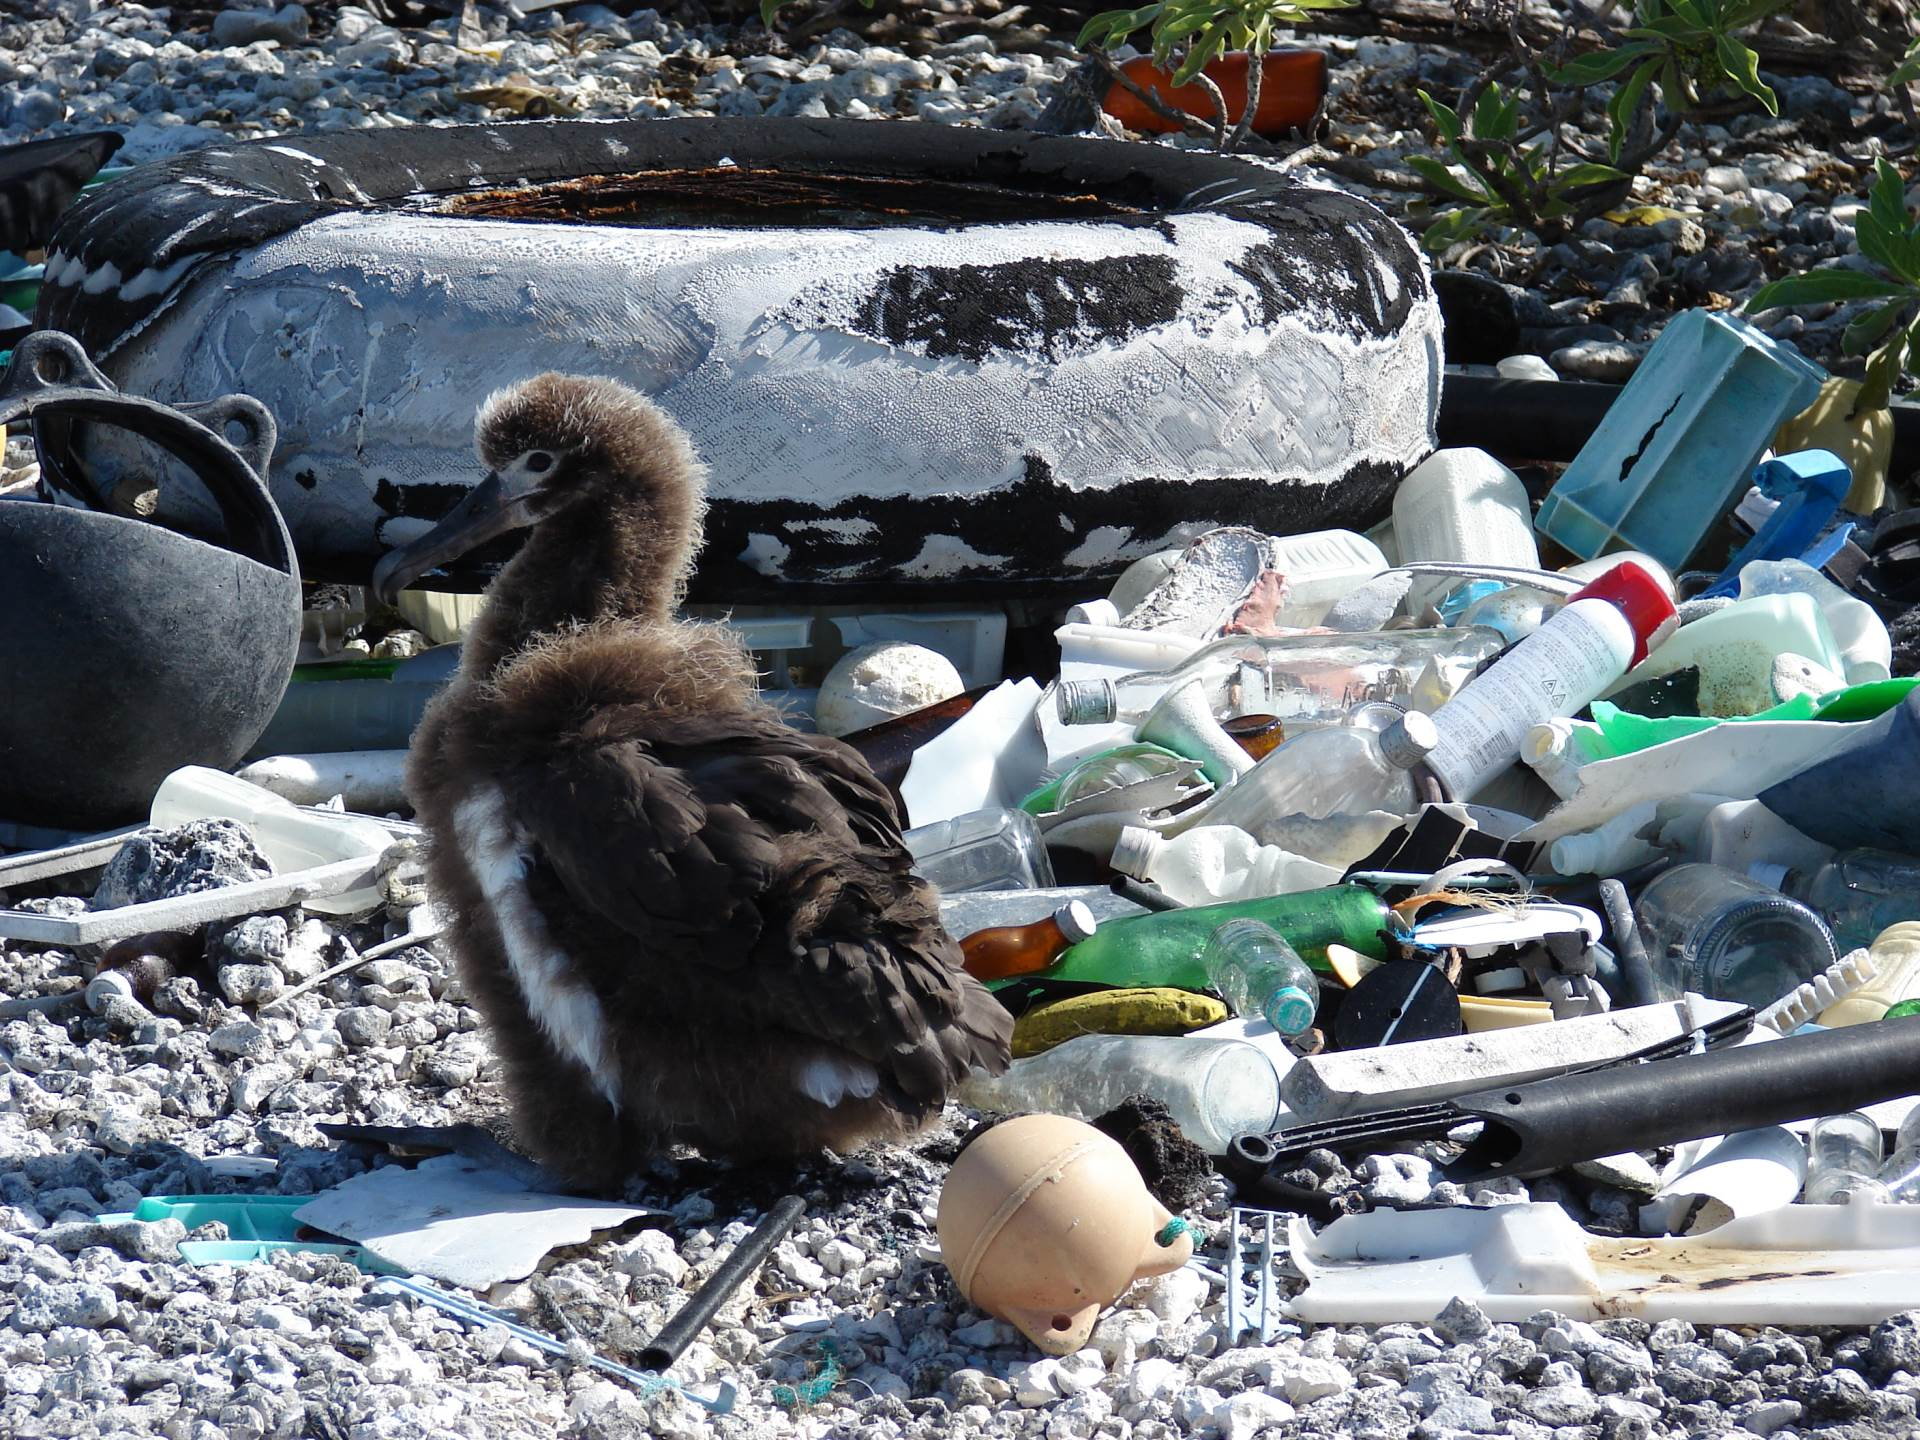 Laysan albatross chick in the middle of marine debris, Midway Atoll, Spit Island